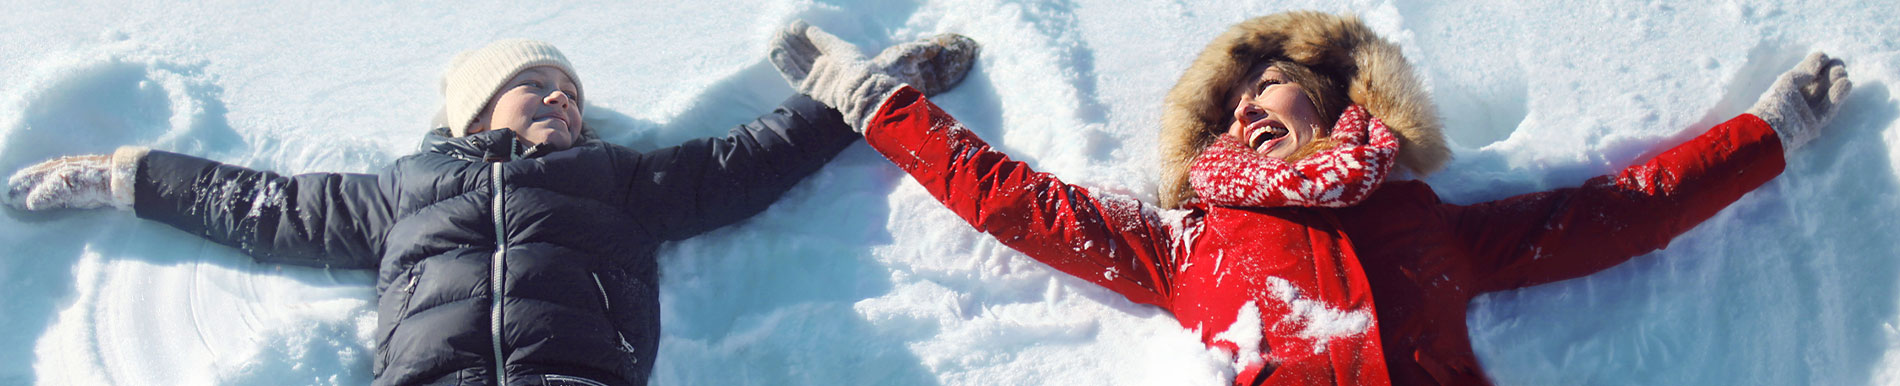 https://www.healthychildren.org/SiteCollectionImage-Homepage-Banners/mother-son-snow-angels.jpg